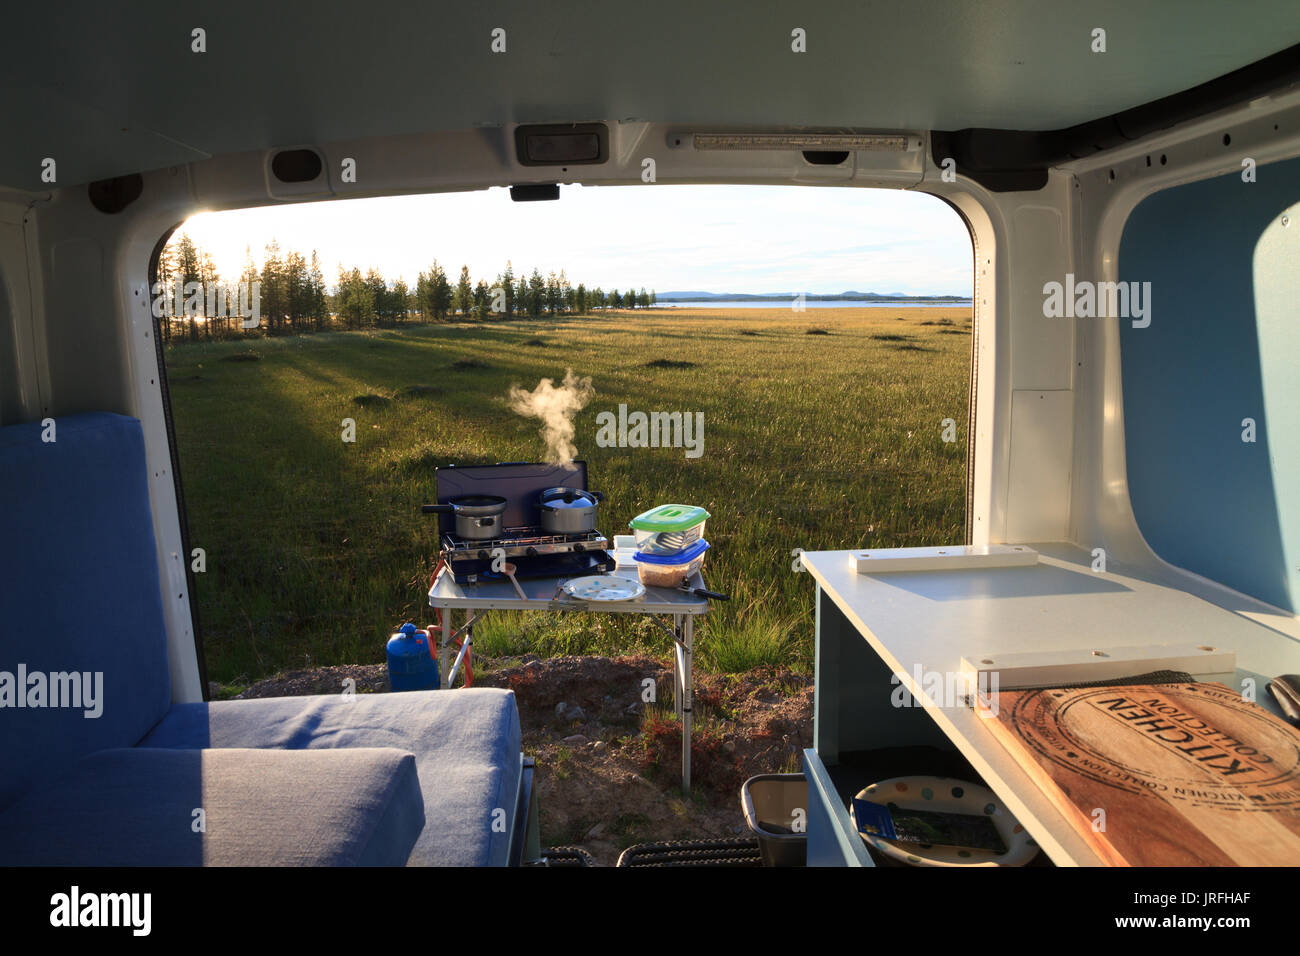 View from inside while cooking outside while free camping in a camper van - Stock Image